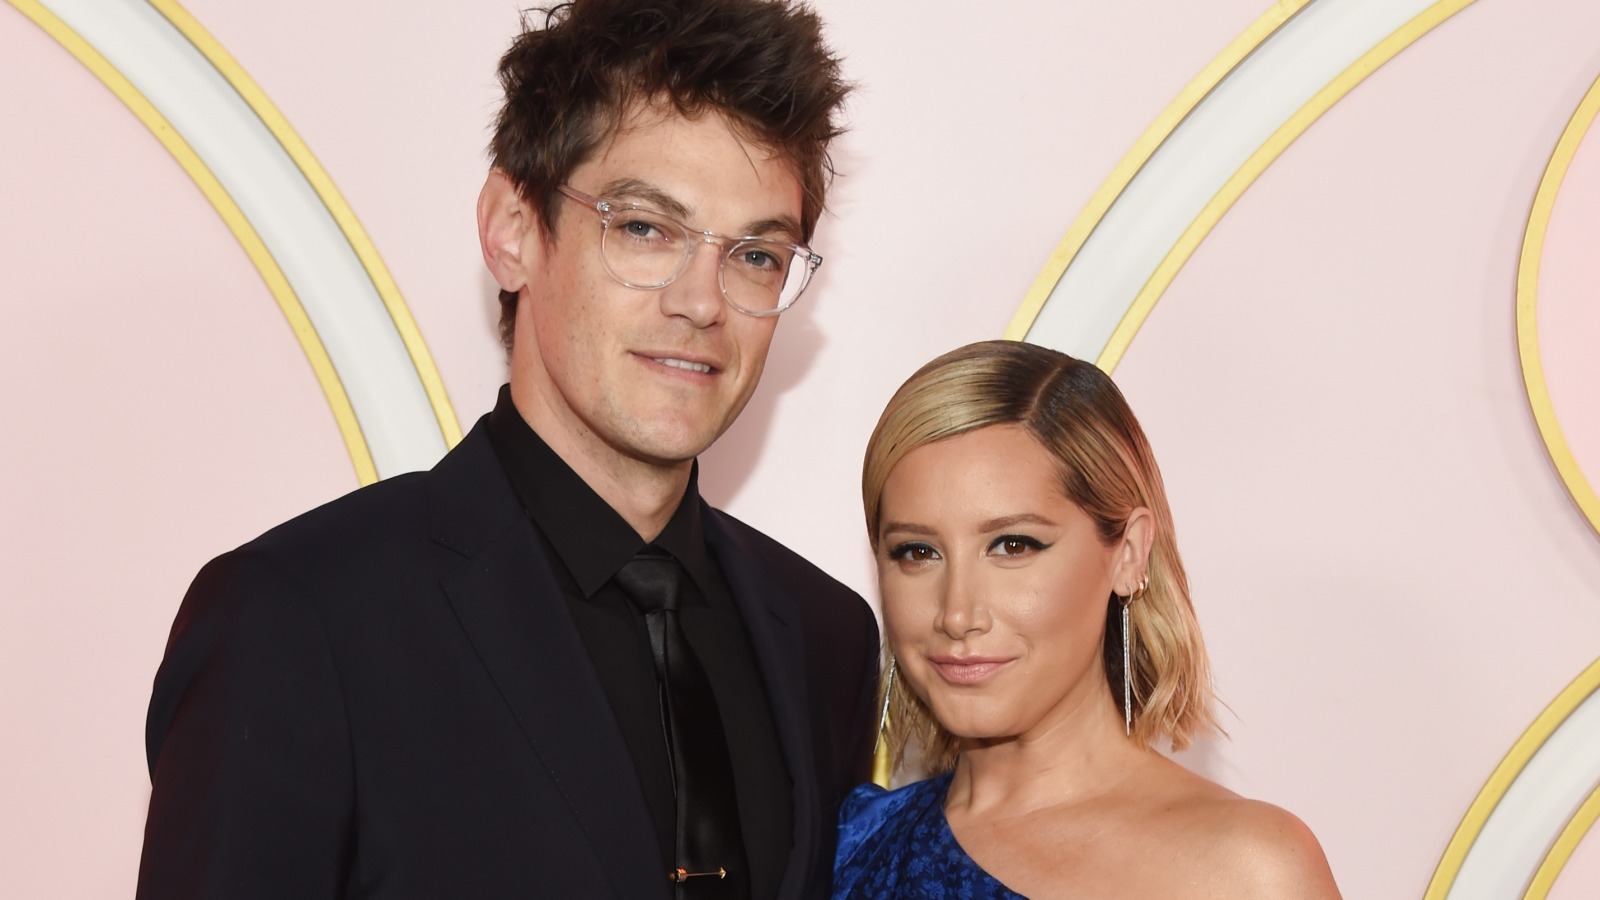 The unsaid truth of Ashley Tisdale's husband